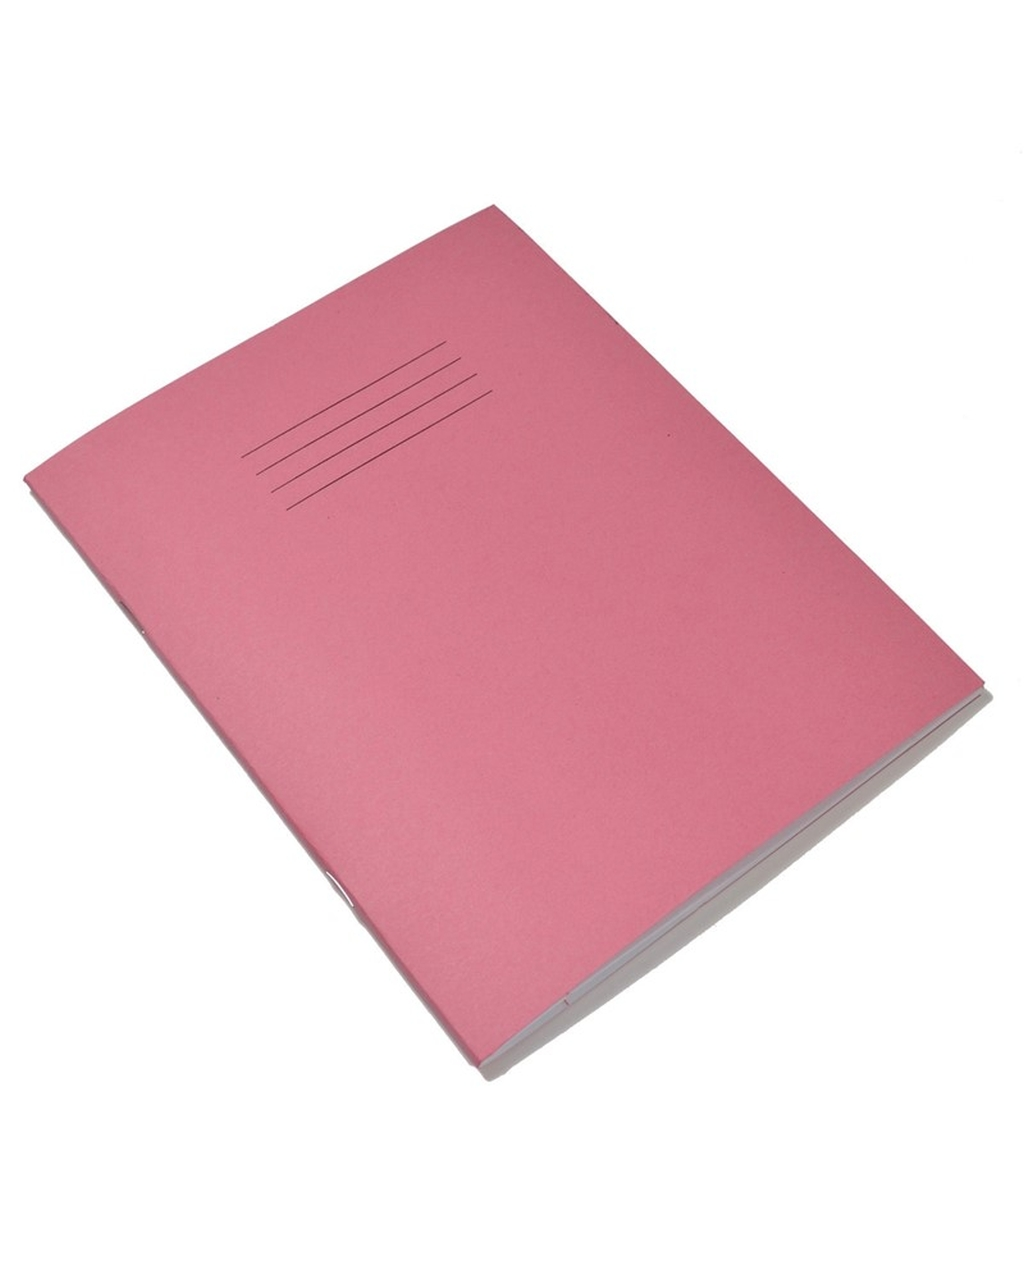 Exercise Book 9 x 7 (229 x 178mm) Pink Cover10mm Ruled 48 Pages